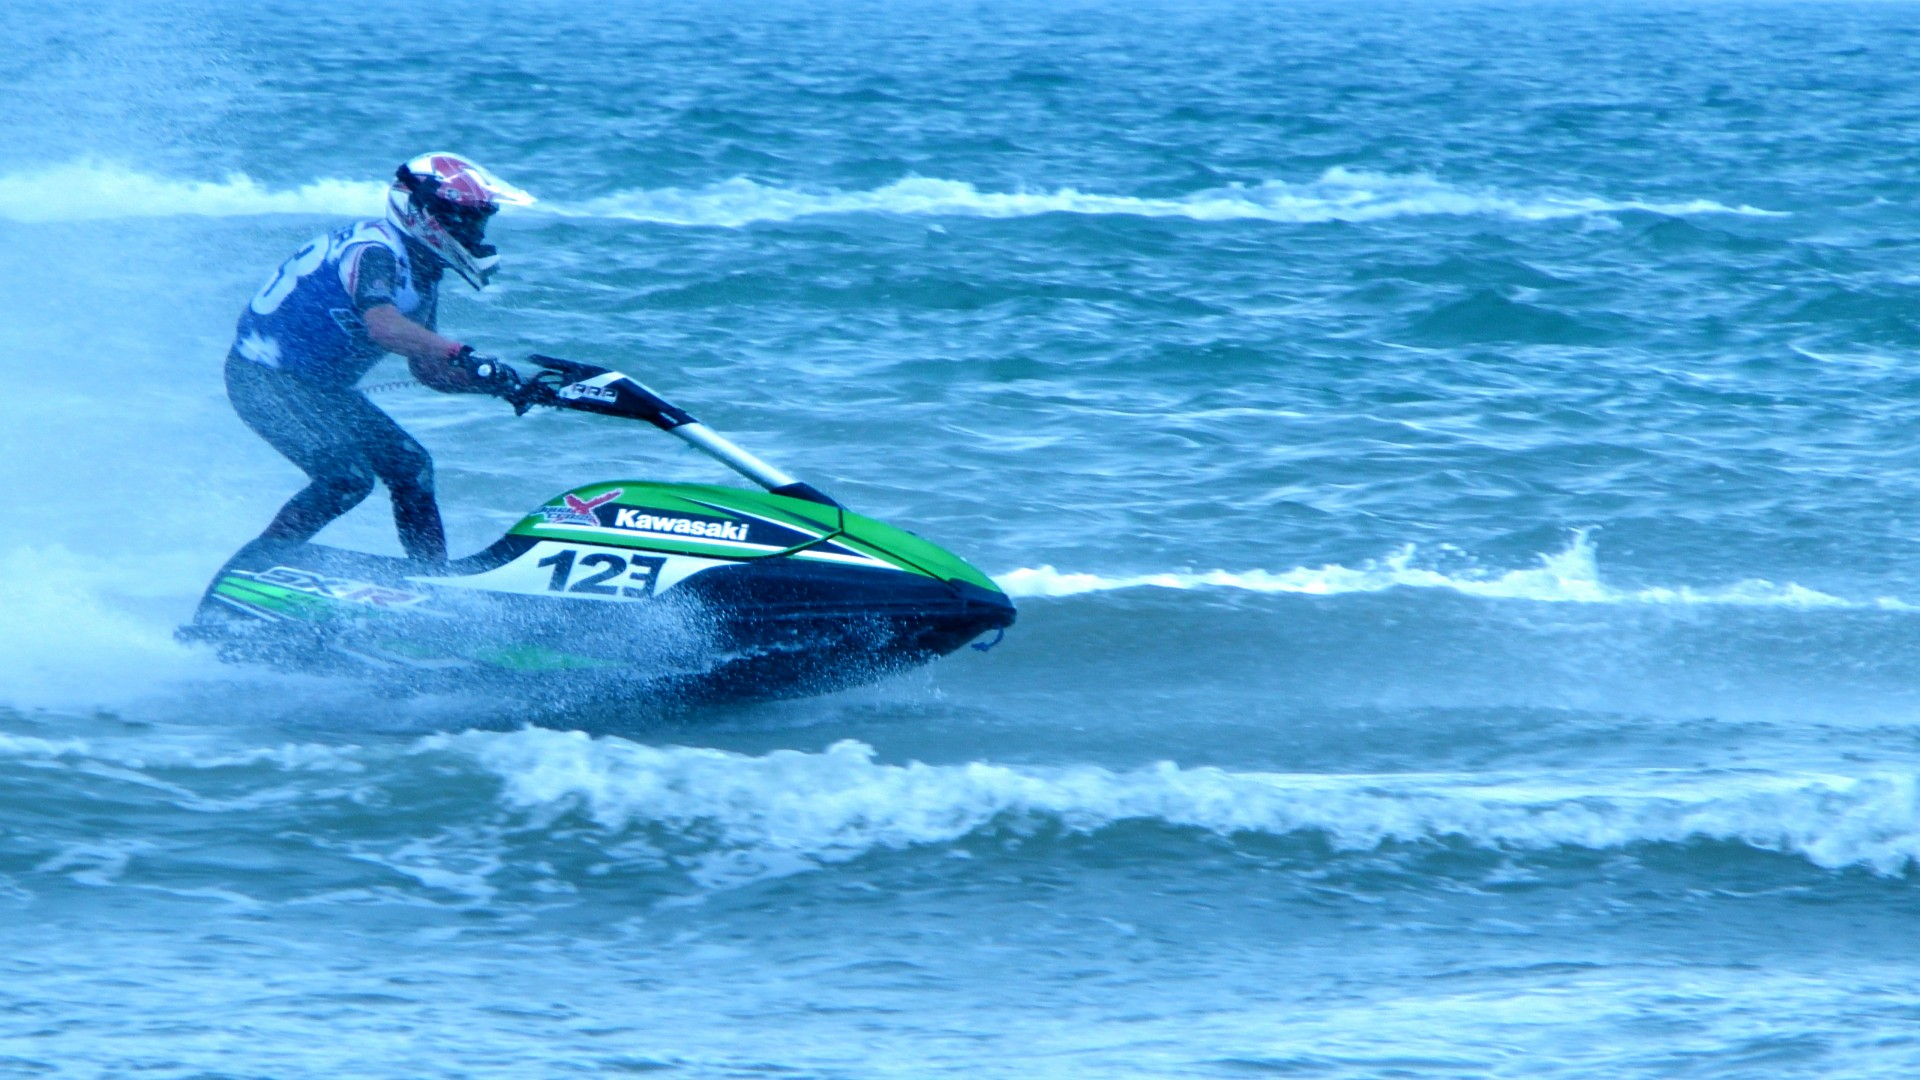 Gratis Jet Ski Jet Skier Water Skiing Free Stock Photo Public Domain